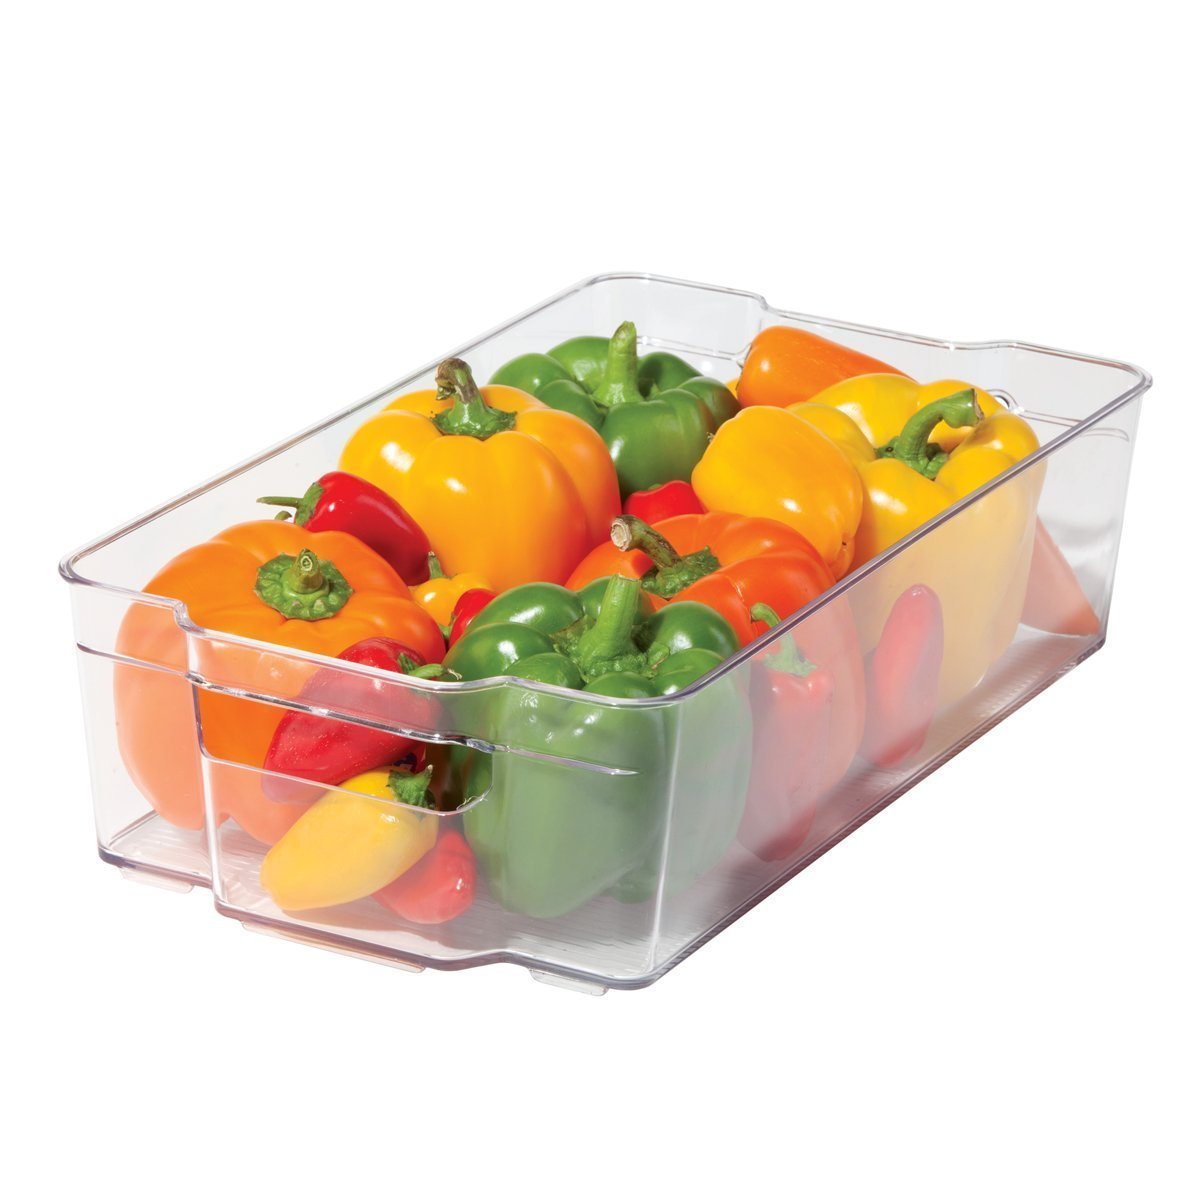 Greenco GRC0250 6 Piece Refrigerator and Freezer Stackable Storage Organizer Bins with Handles Clear